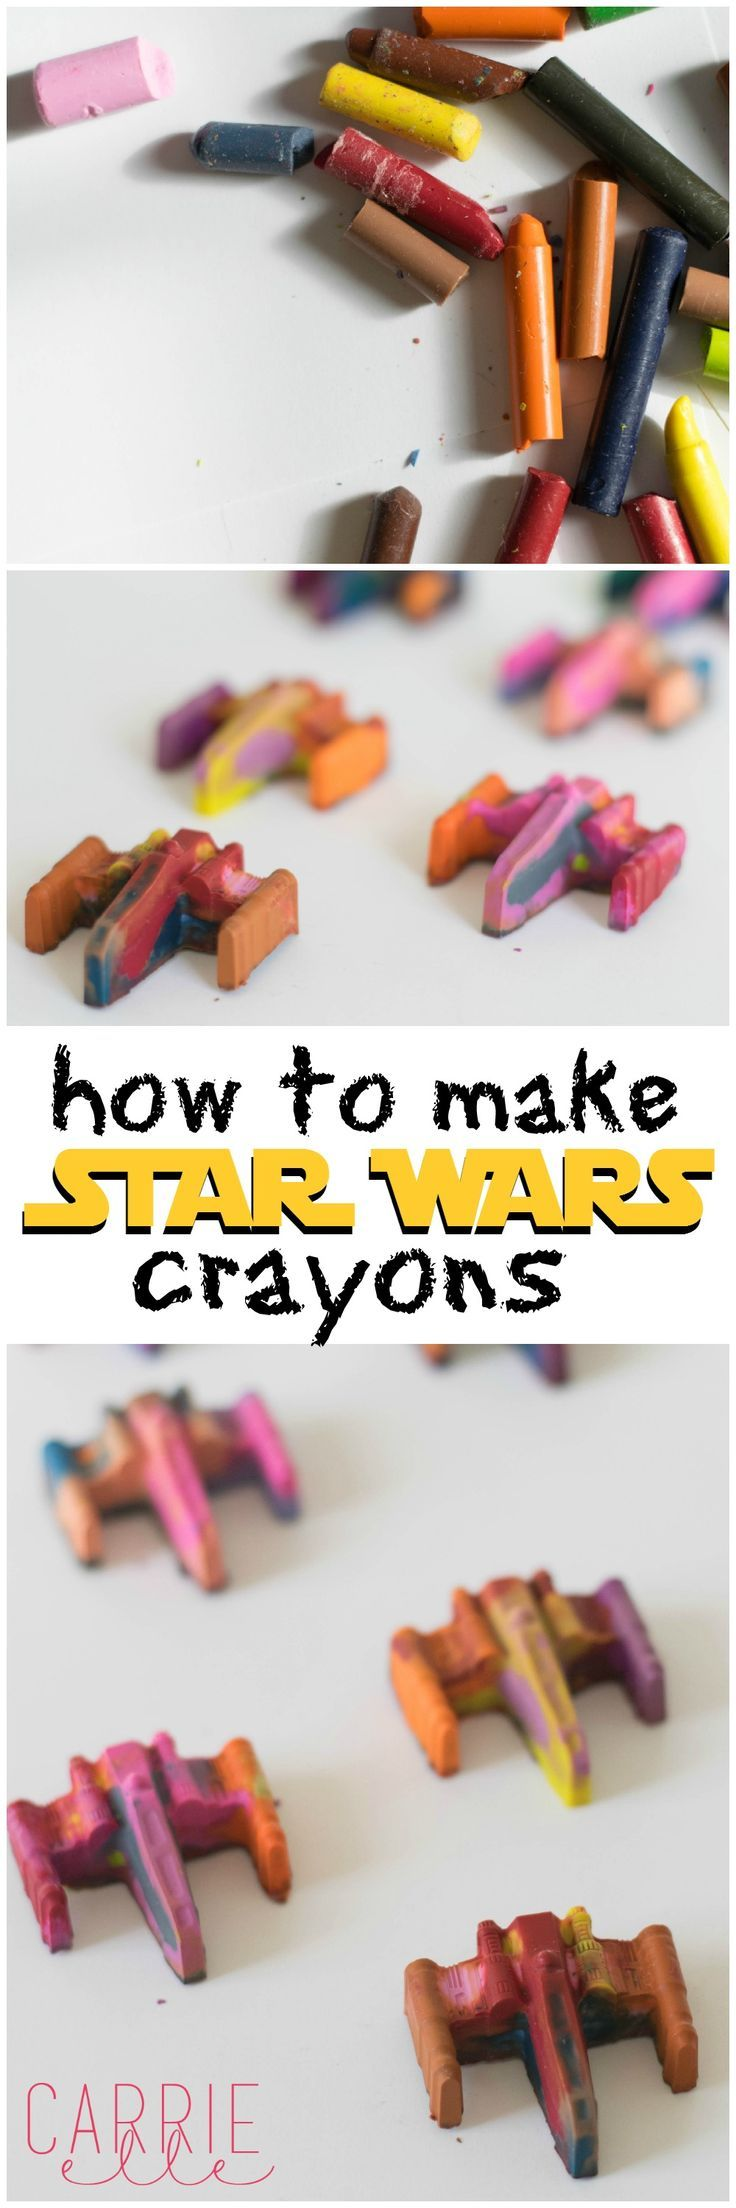 These Star Wars crayons are so  fun! They are the perfect Star Wars party favor for a Star Wars party, but they're also just a fun activity to make with the kids.